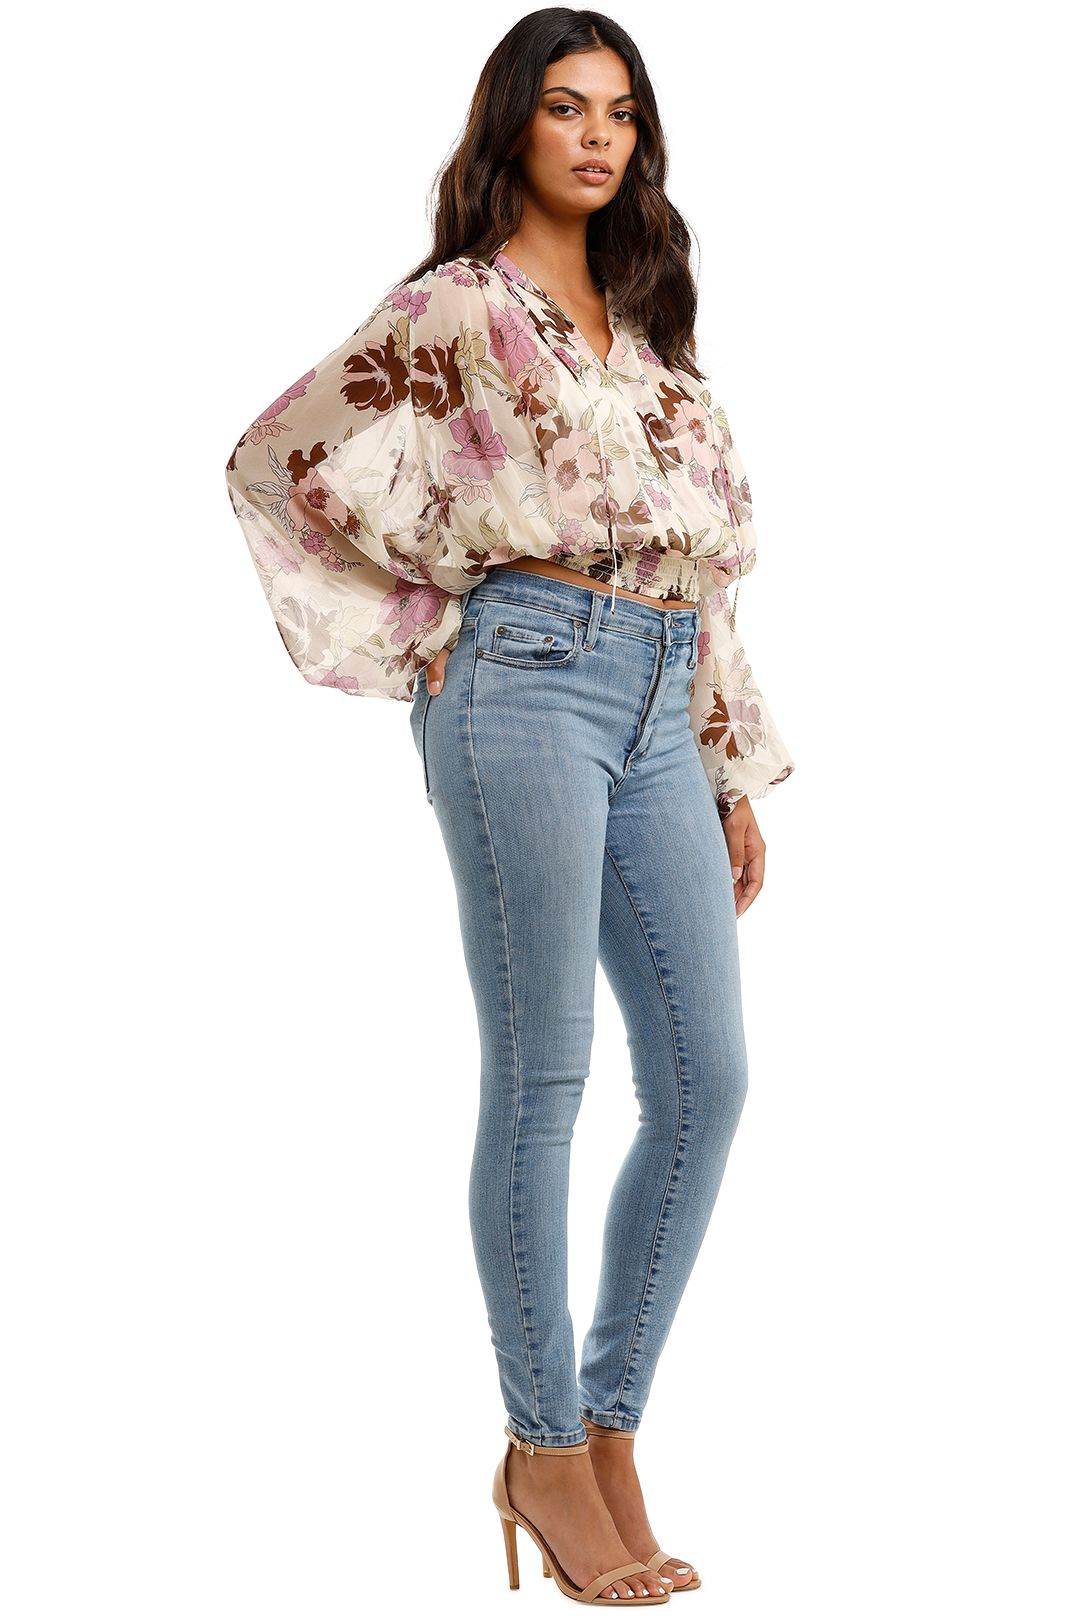 MLM Label Solstice Blouse Aster Floral Light Cropped